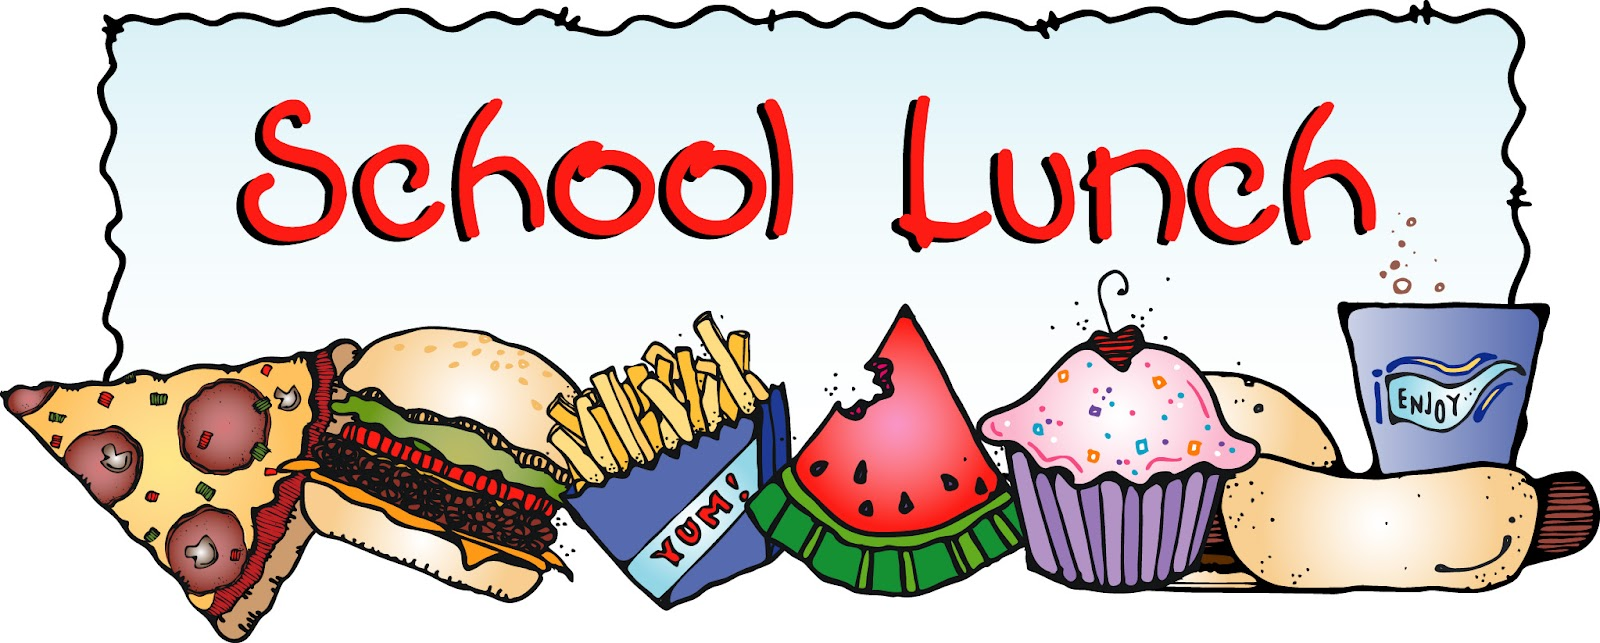 School Lunch Tray Clipart.